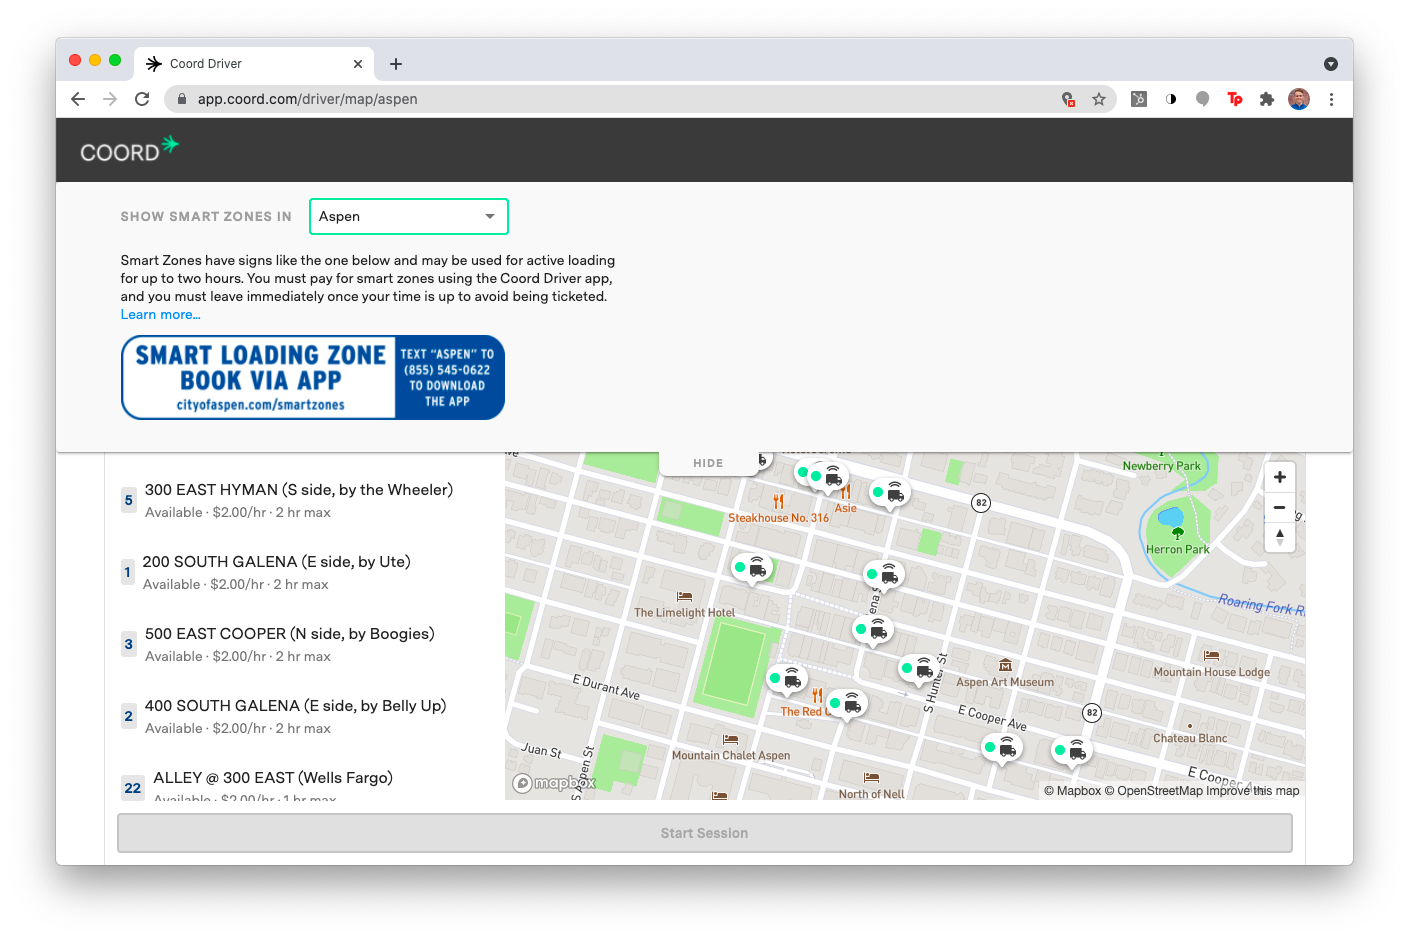 A screenshot of the Coord Driver web app